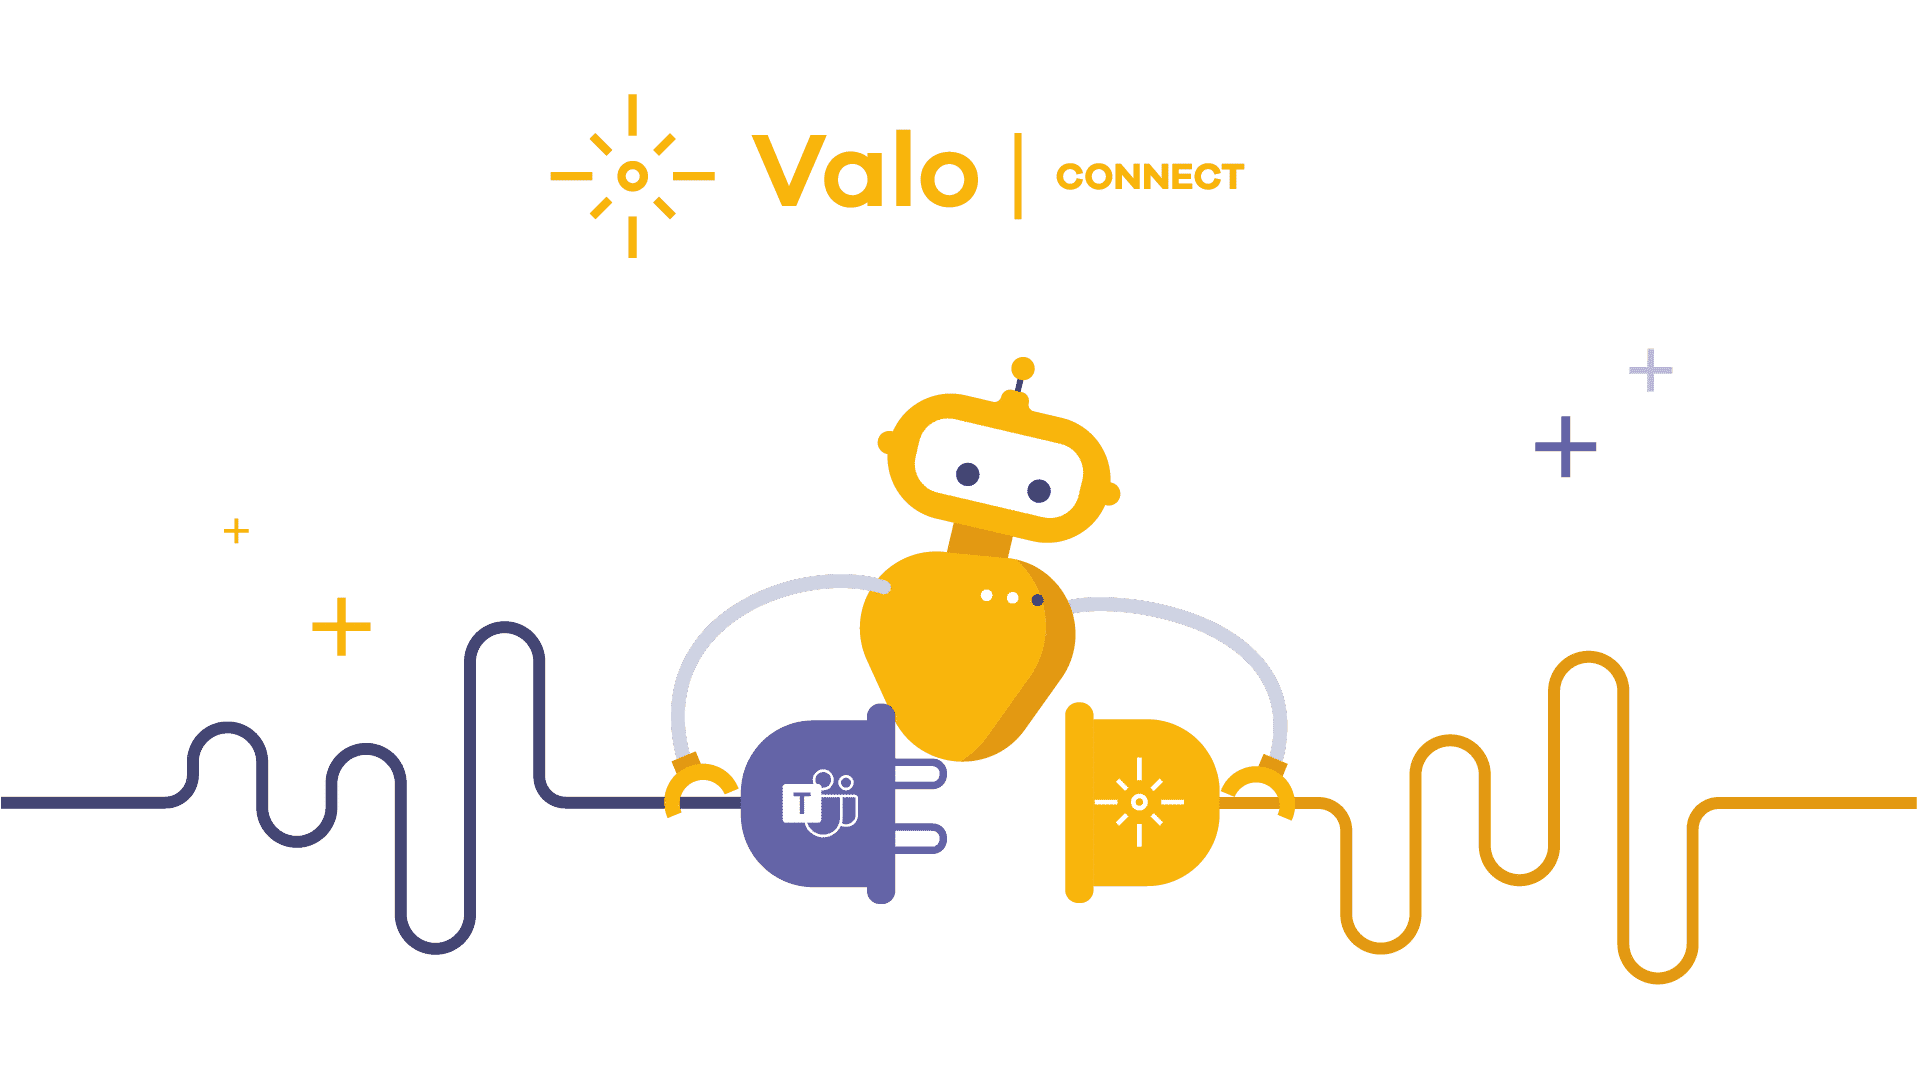 Valo Connect